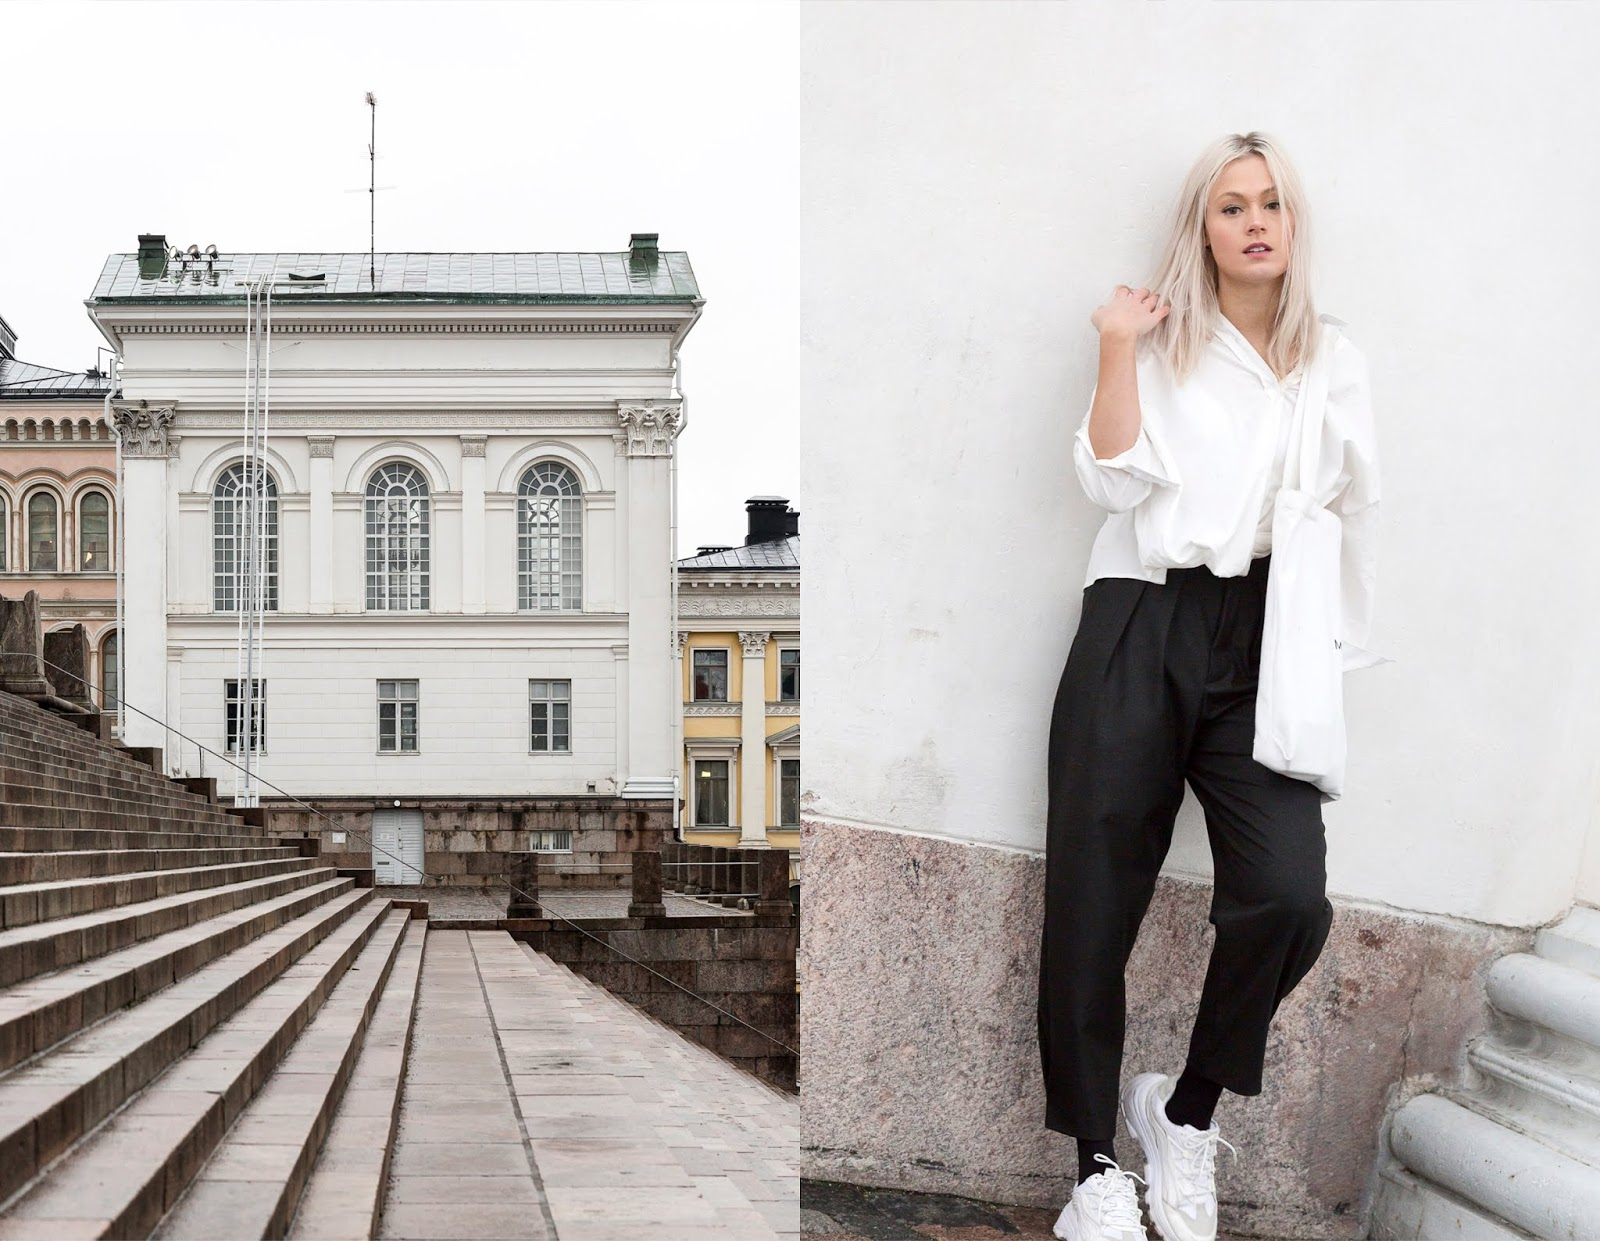 Aida, muoti, naisten muoti, valokuvaaja, fashion, lookbook, ladies fashion, photographer, Frida Steiner, photoshoot, Finland, Helsinki, model, Visualaddict, blog, fashionblogger, lifestyle, visualaddictfrida